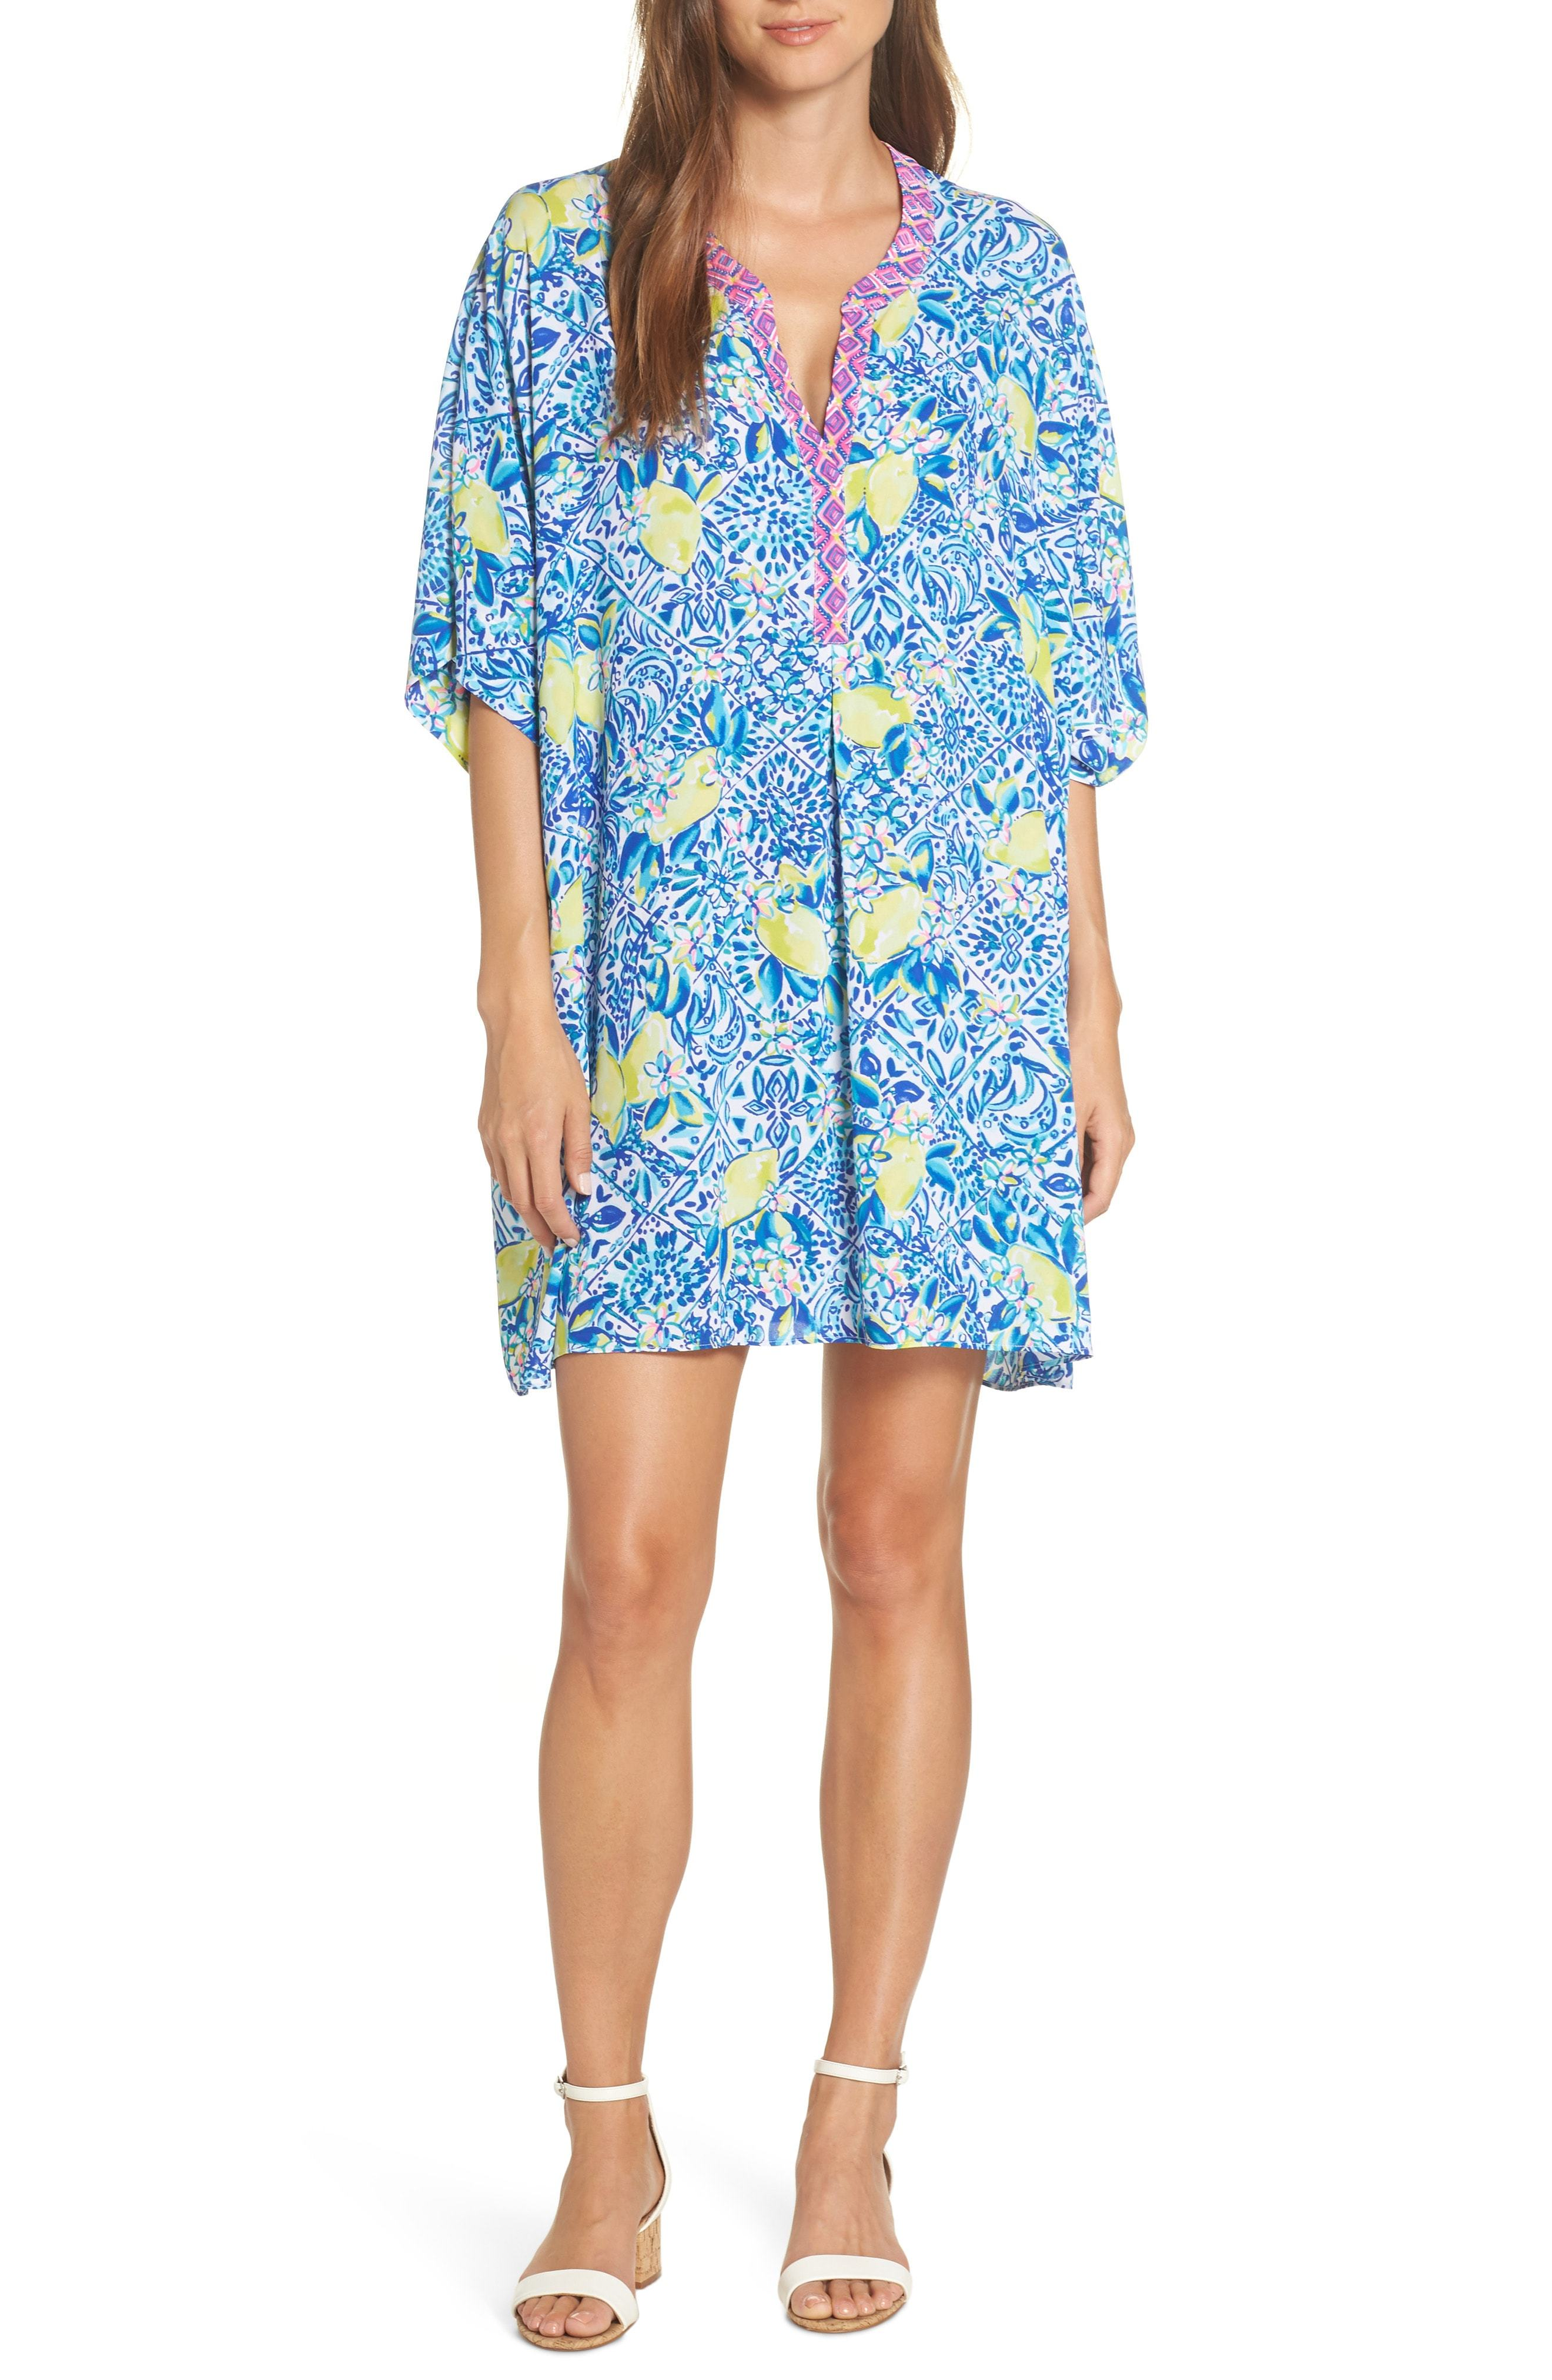 Lilly Pulitzer Leland Cover Up Dress